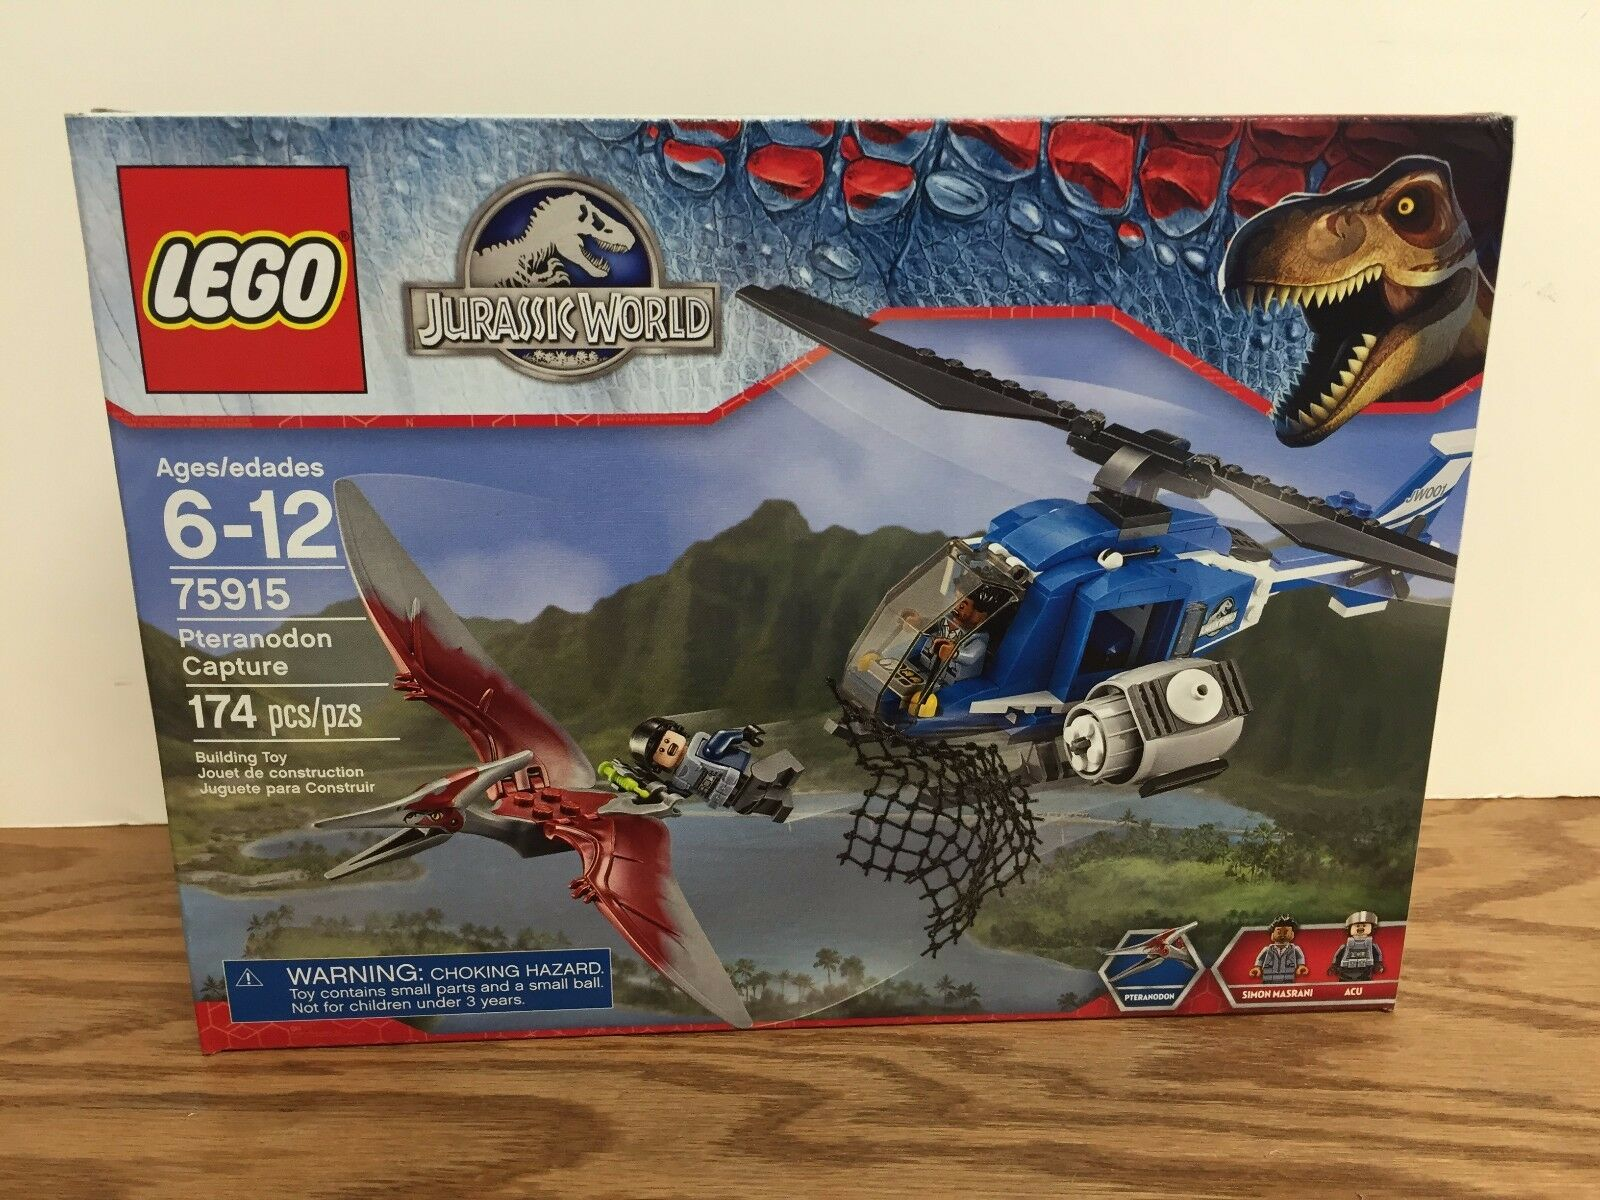 LEGO 75915 Pteranodon Capture JURASSIC WORLD (174 pieces) Factory Sealed Box